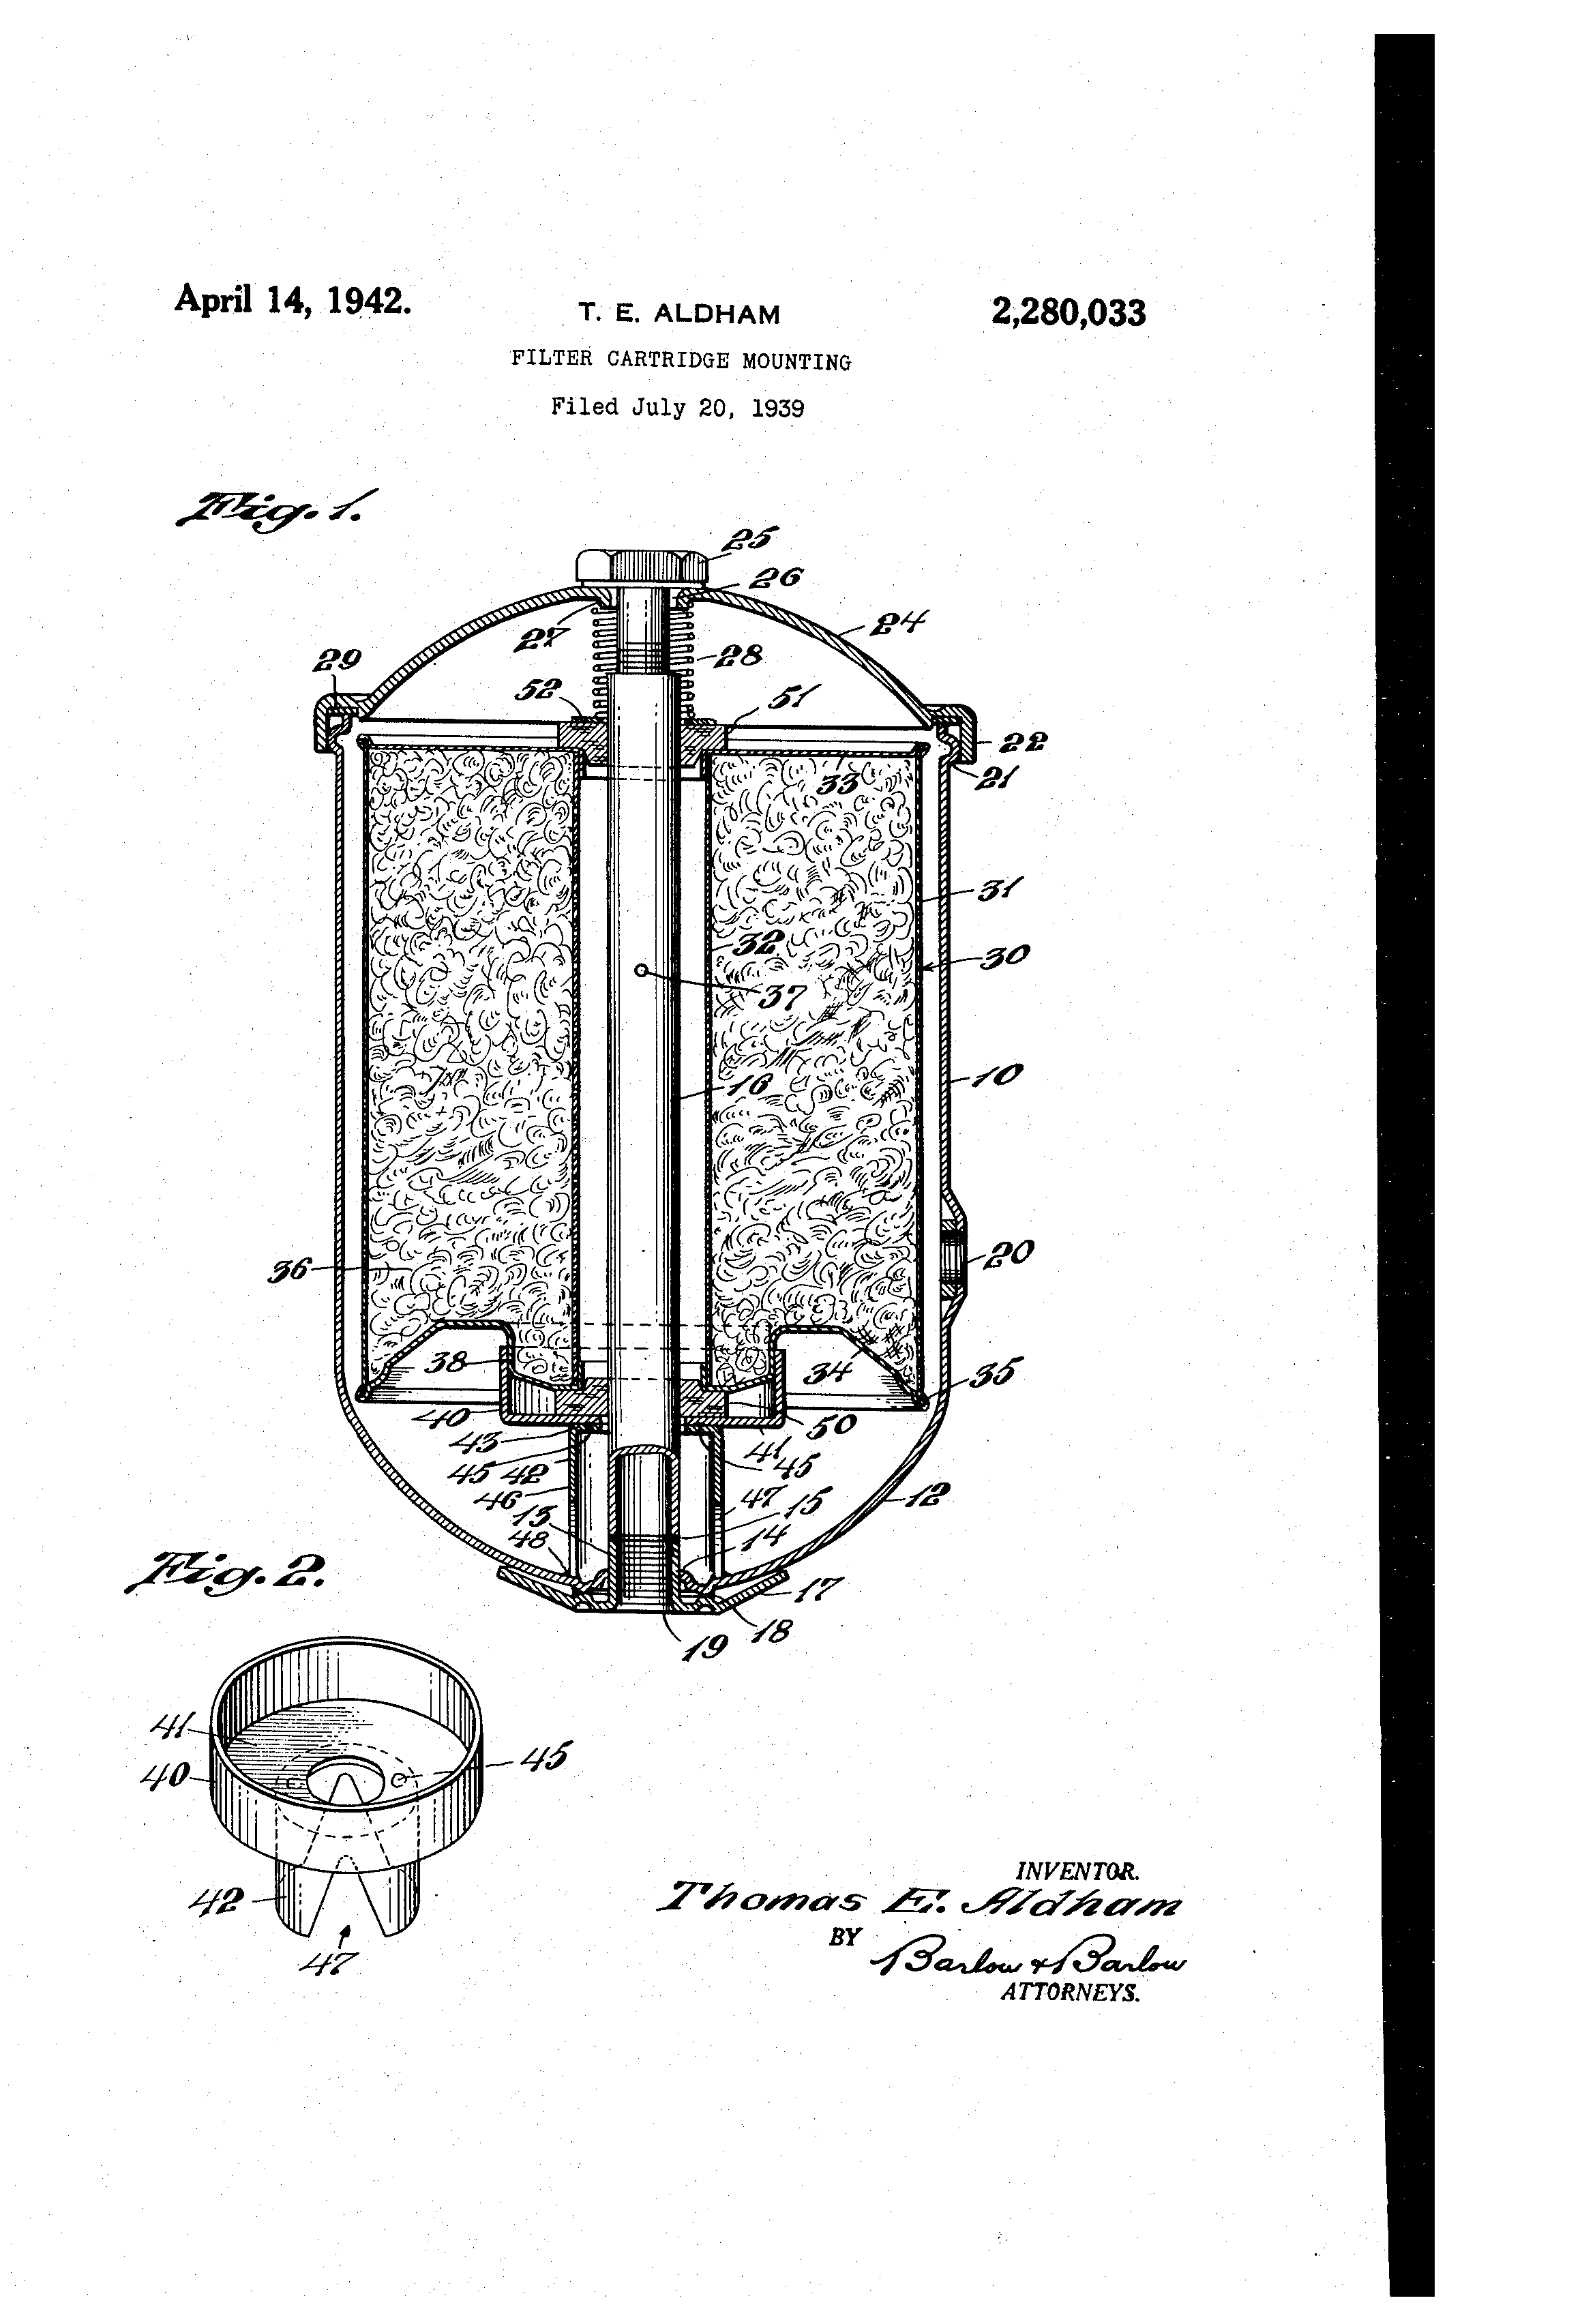 patent us2280033 - filter cartridge mounting